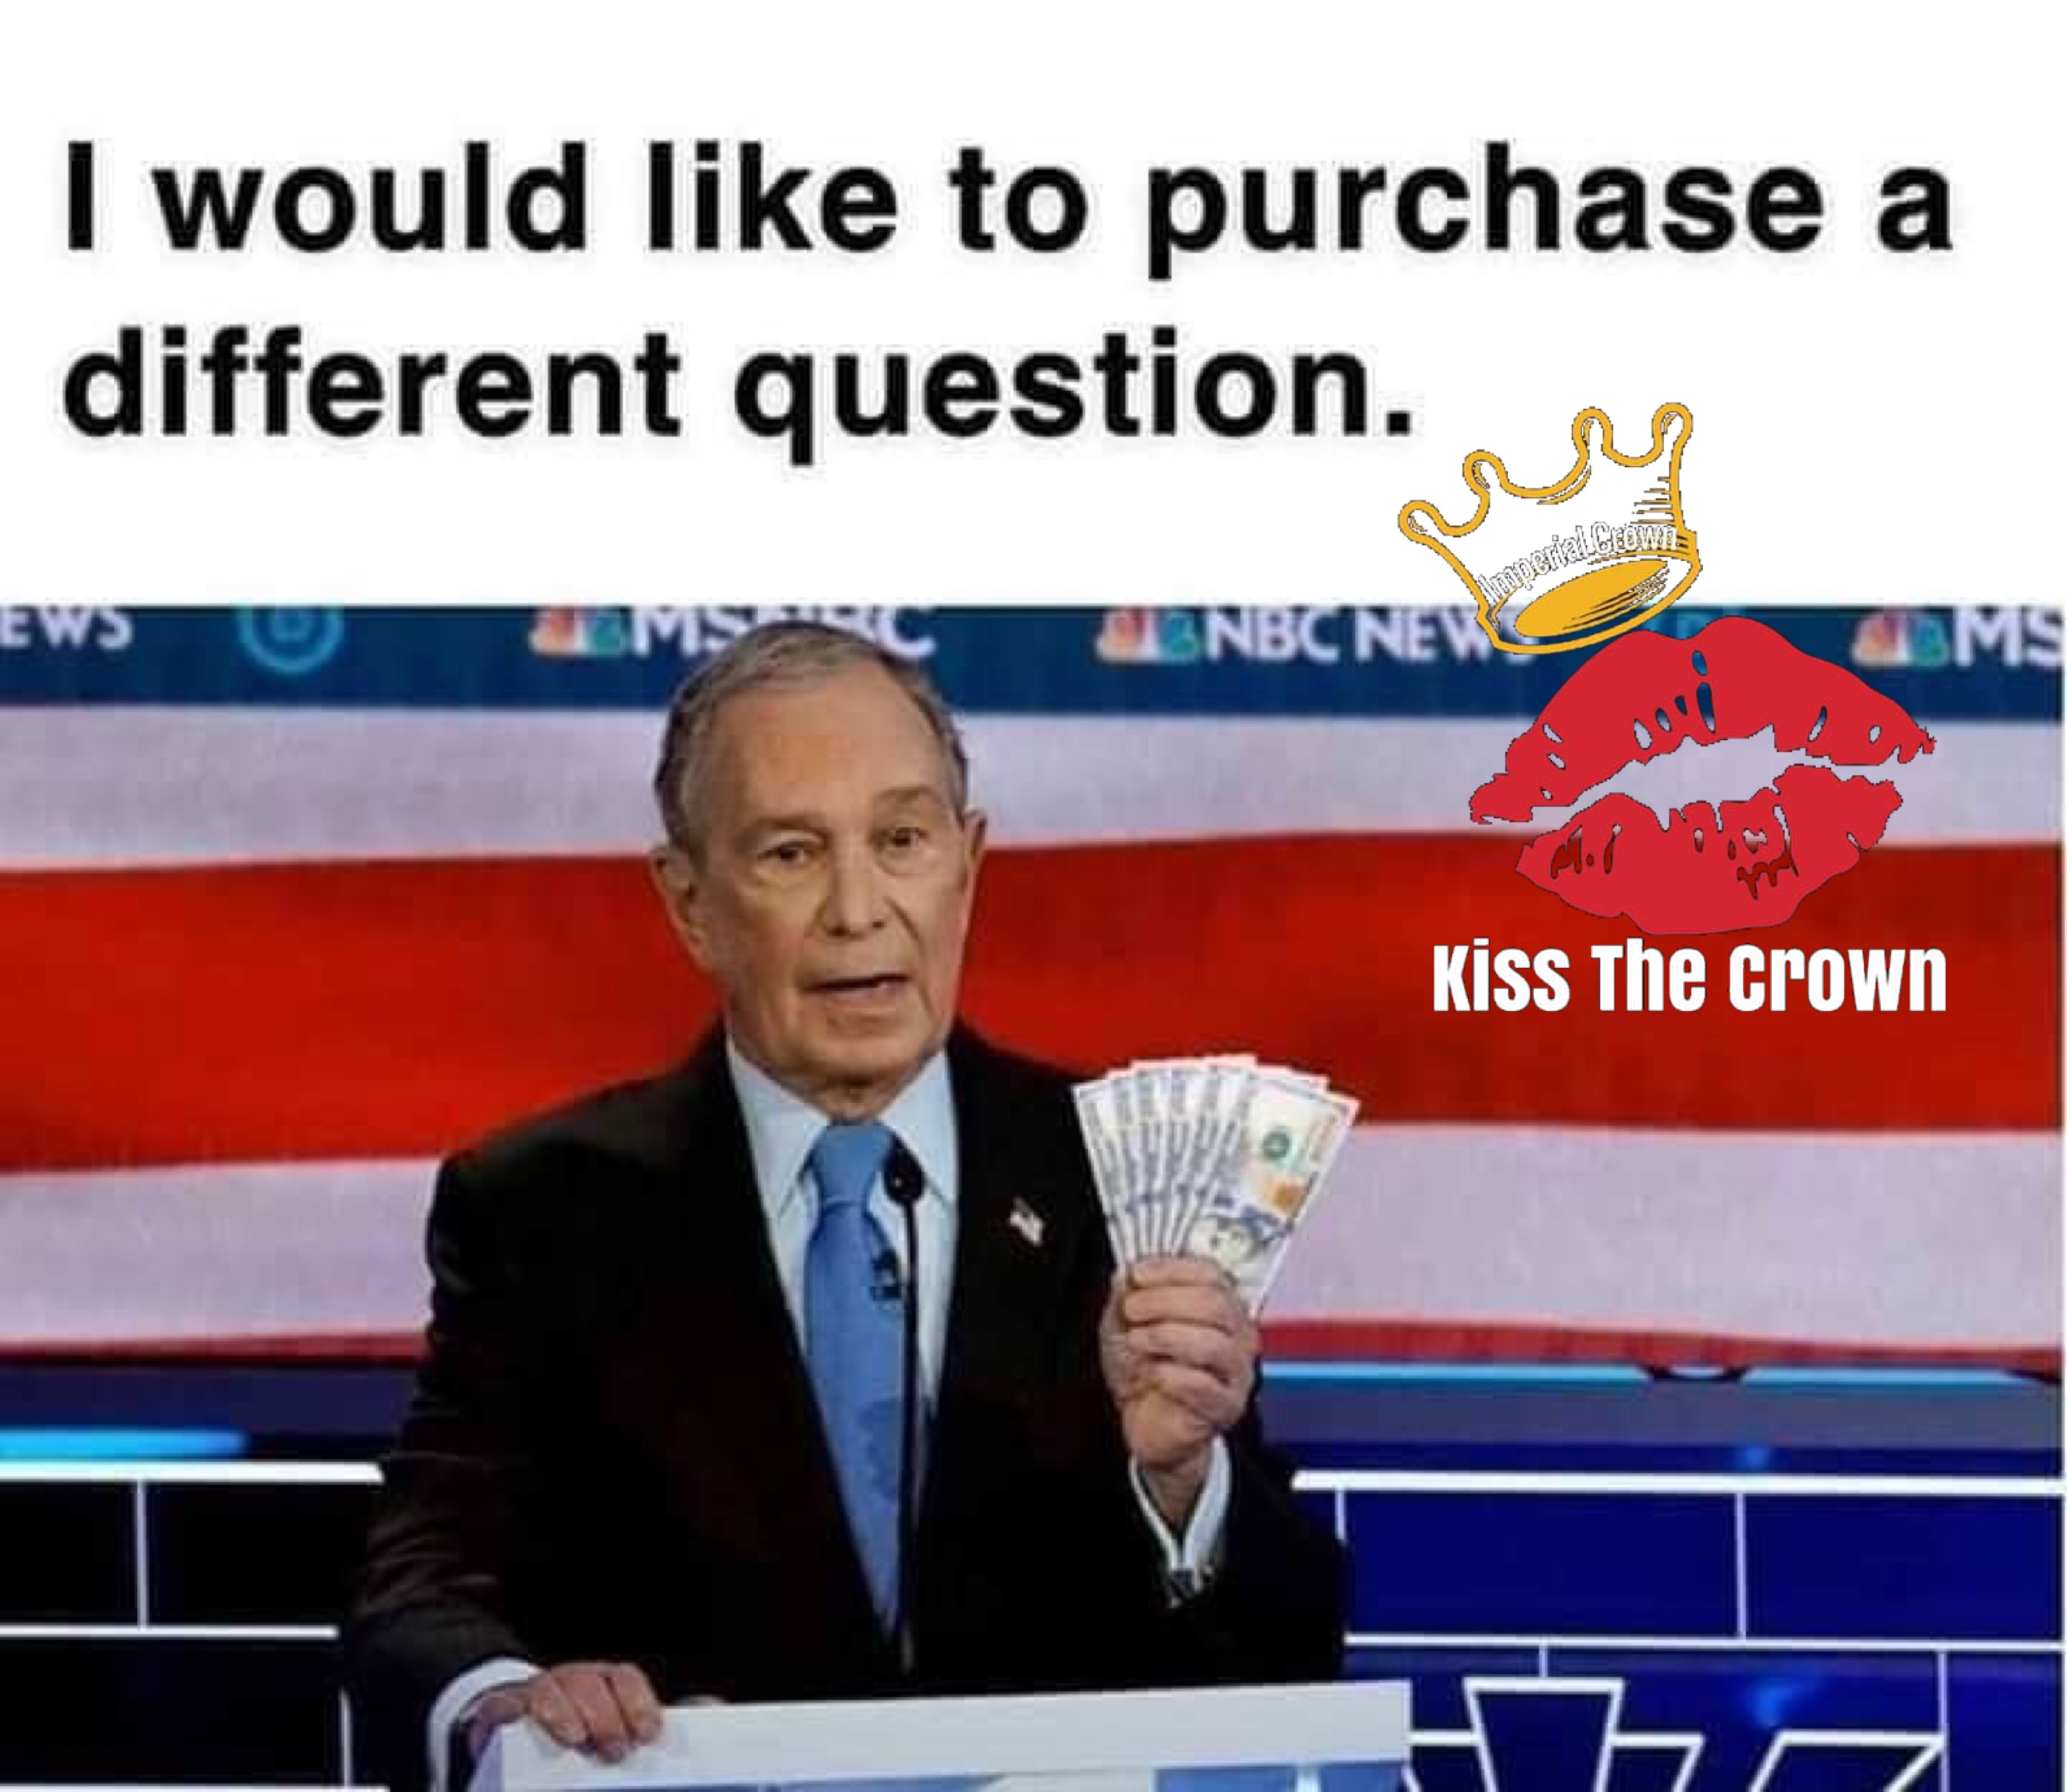 I would like to purchase a different question